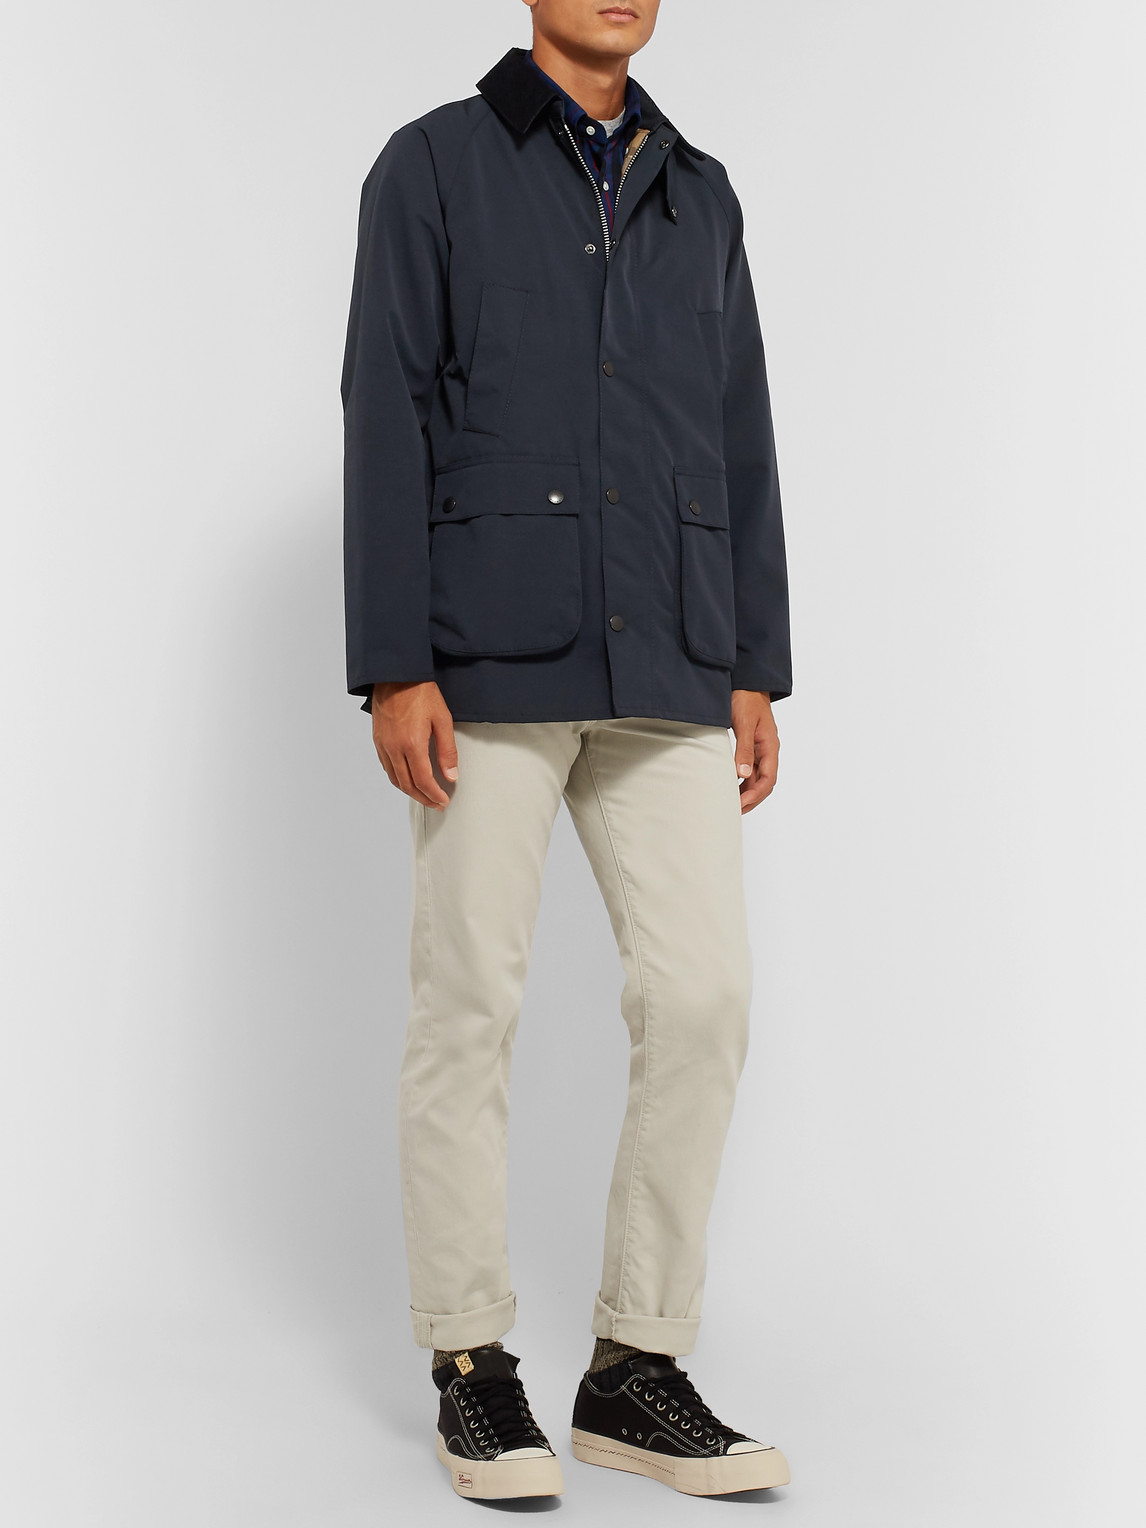 Barbour White Label - White Label Bedale Corduroy-trimmed Shell Jacket - Blue - S - Men